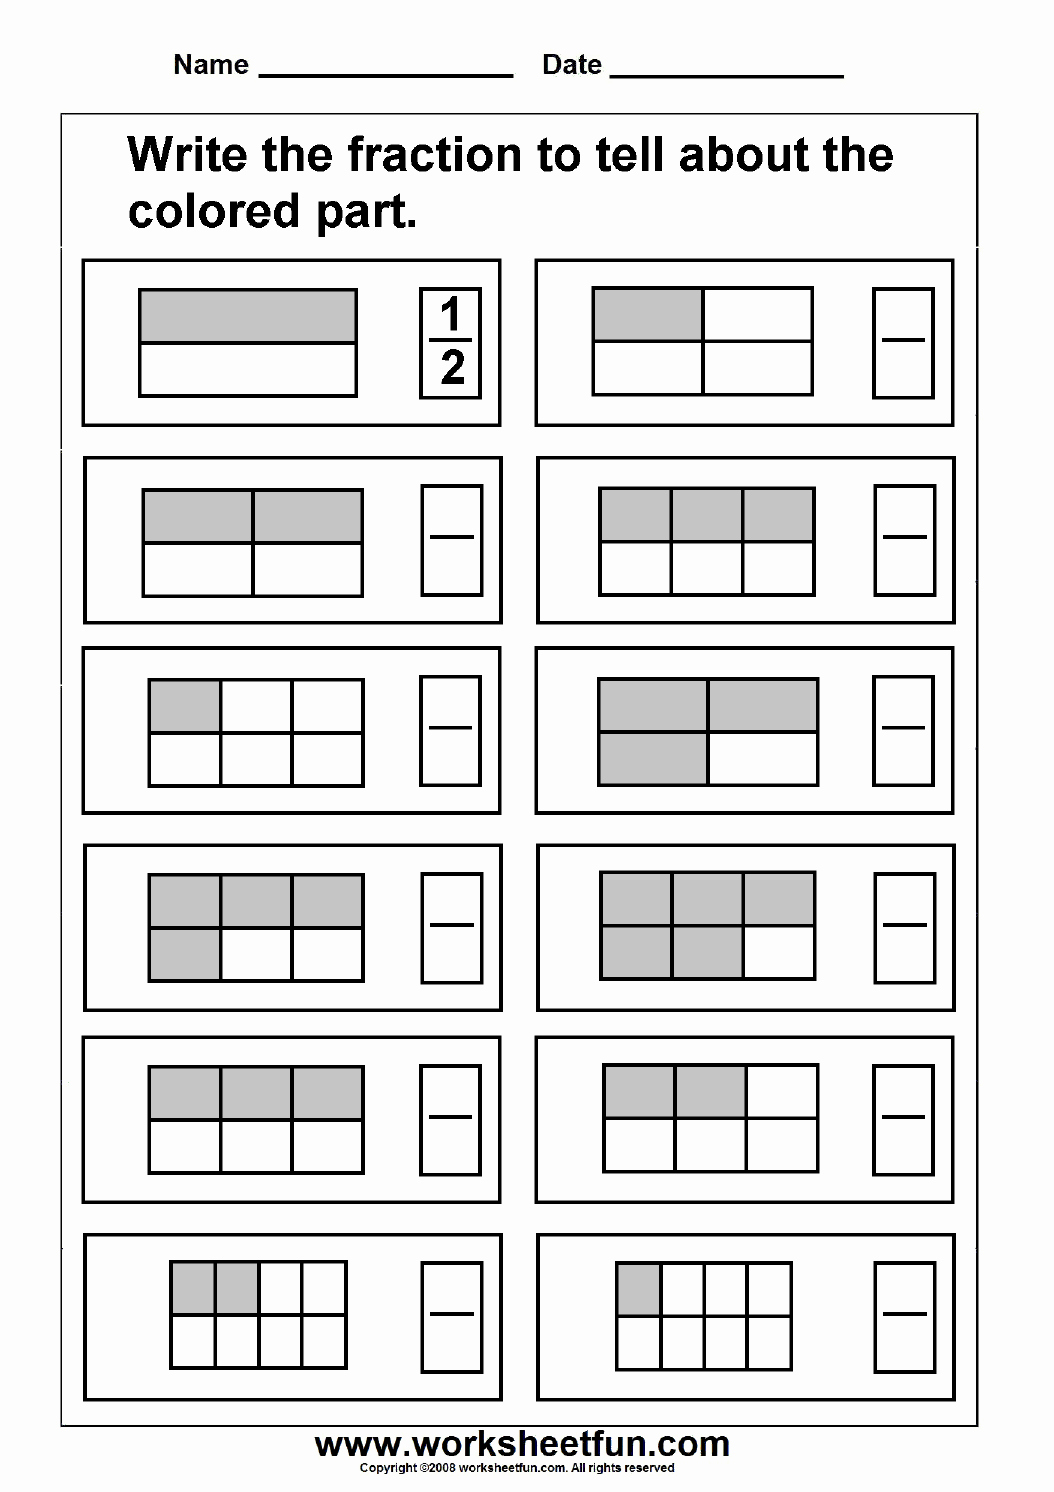 Fractions Worksheets First Grade Awesome Free Printable First Grade Fraction Worksheets